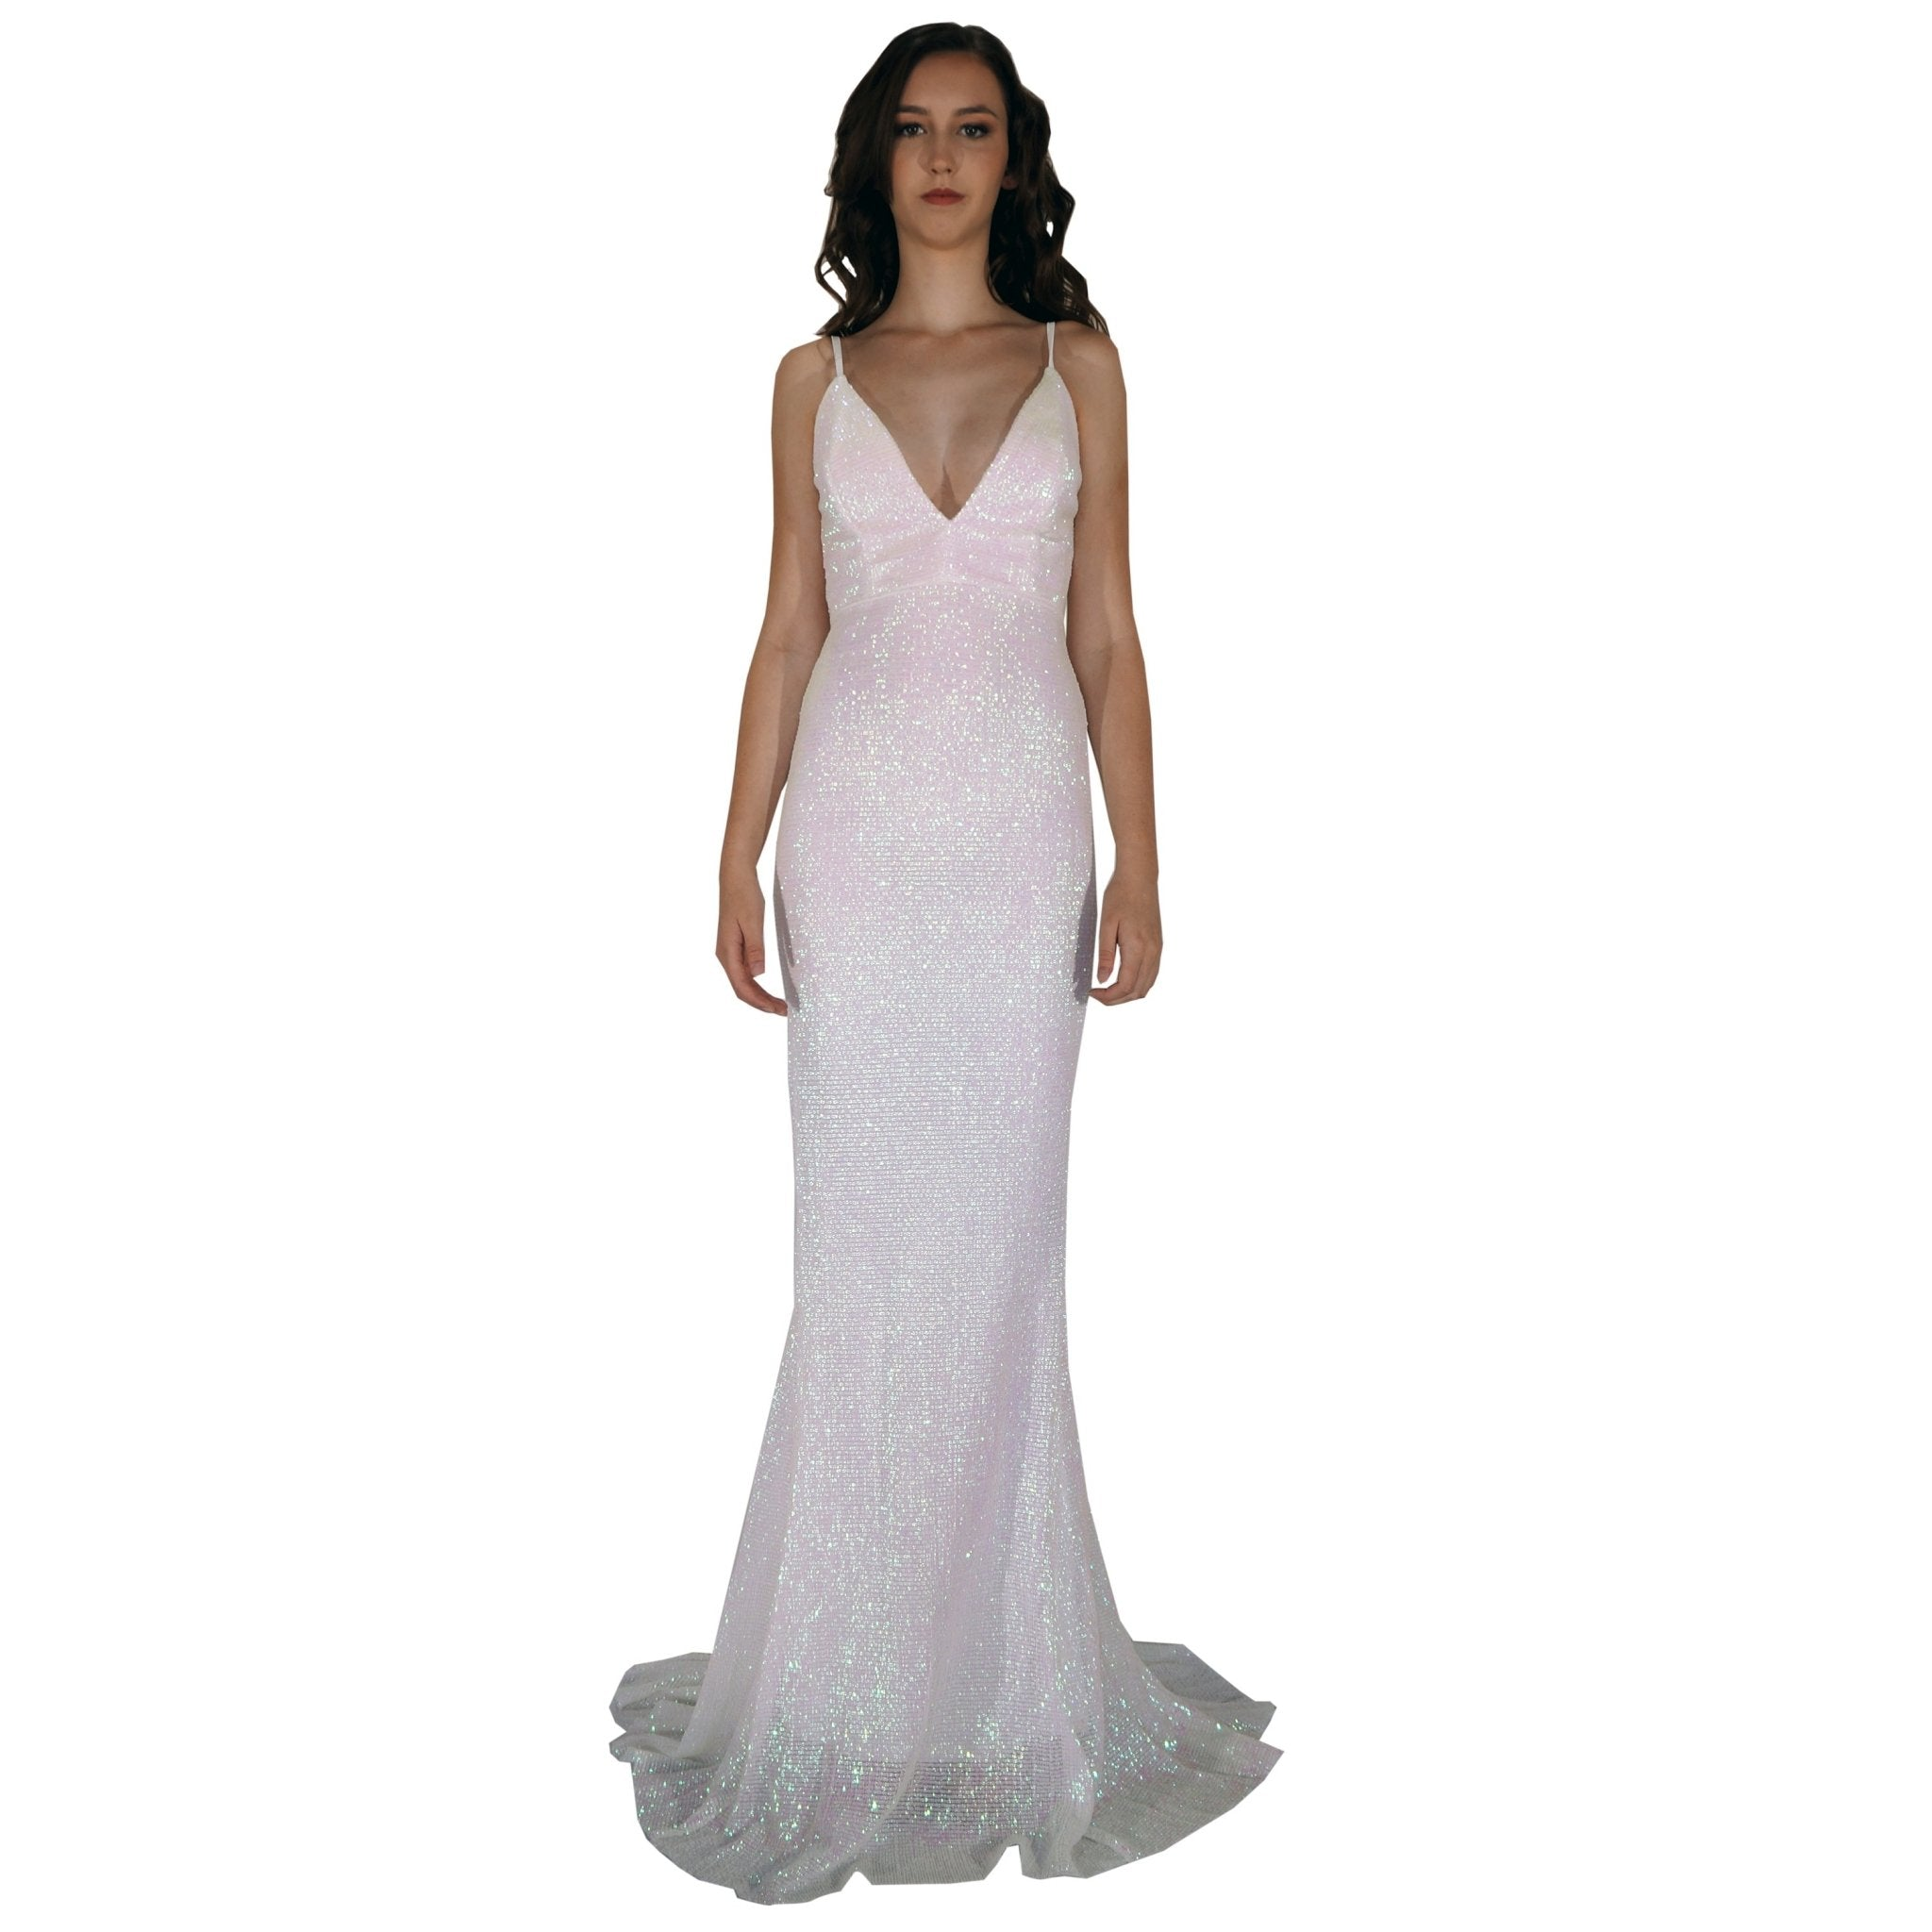 Long Backless Pearlescent White Sequin Evening Dresses Envious Bridal & Formal